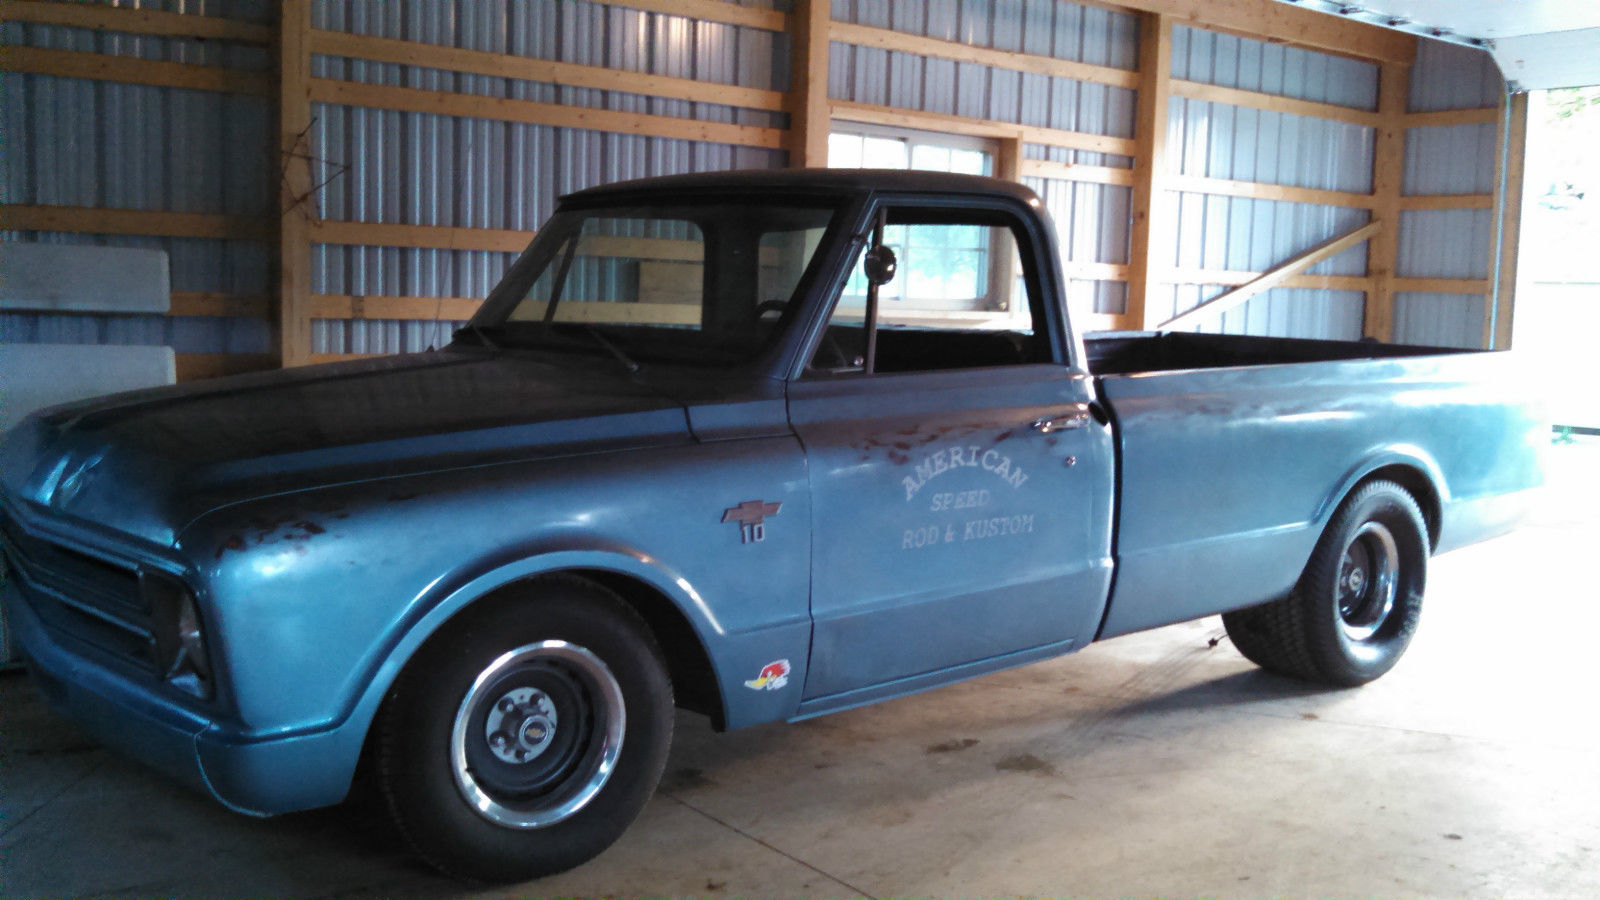 67 chevy c10 shop truck patina paint tubbed for sale in Clarksville, Iowa, United States